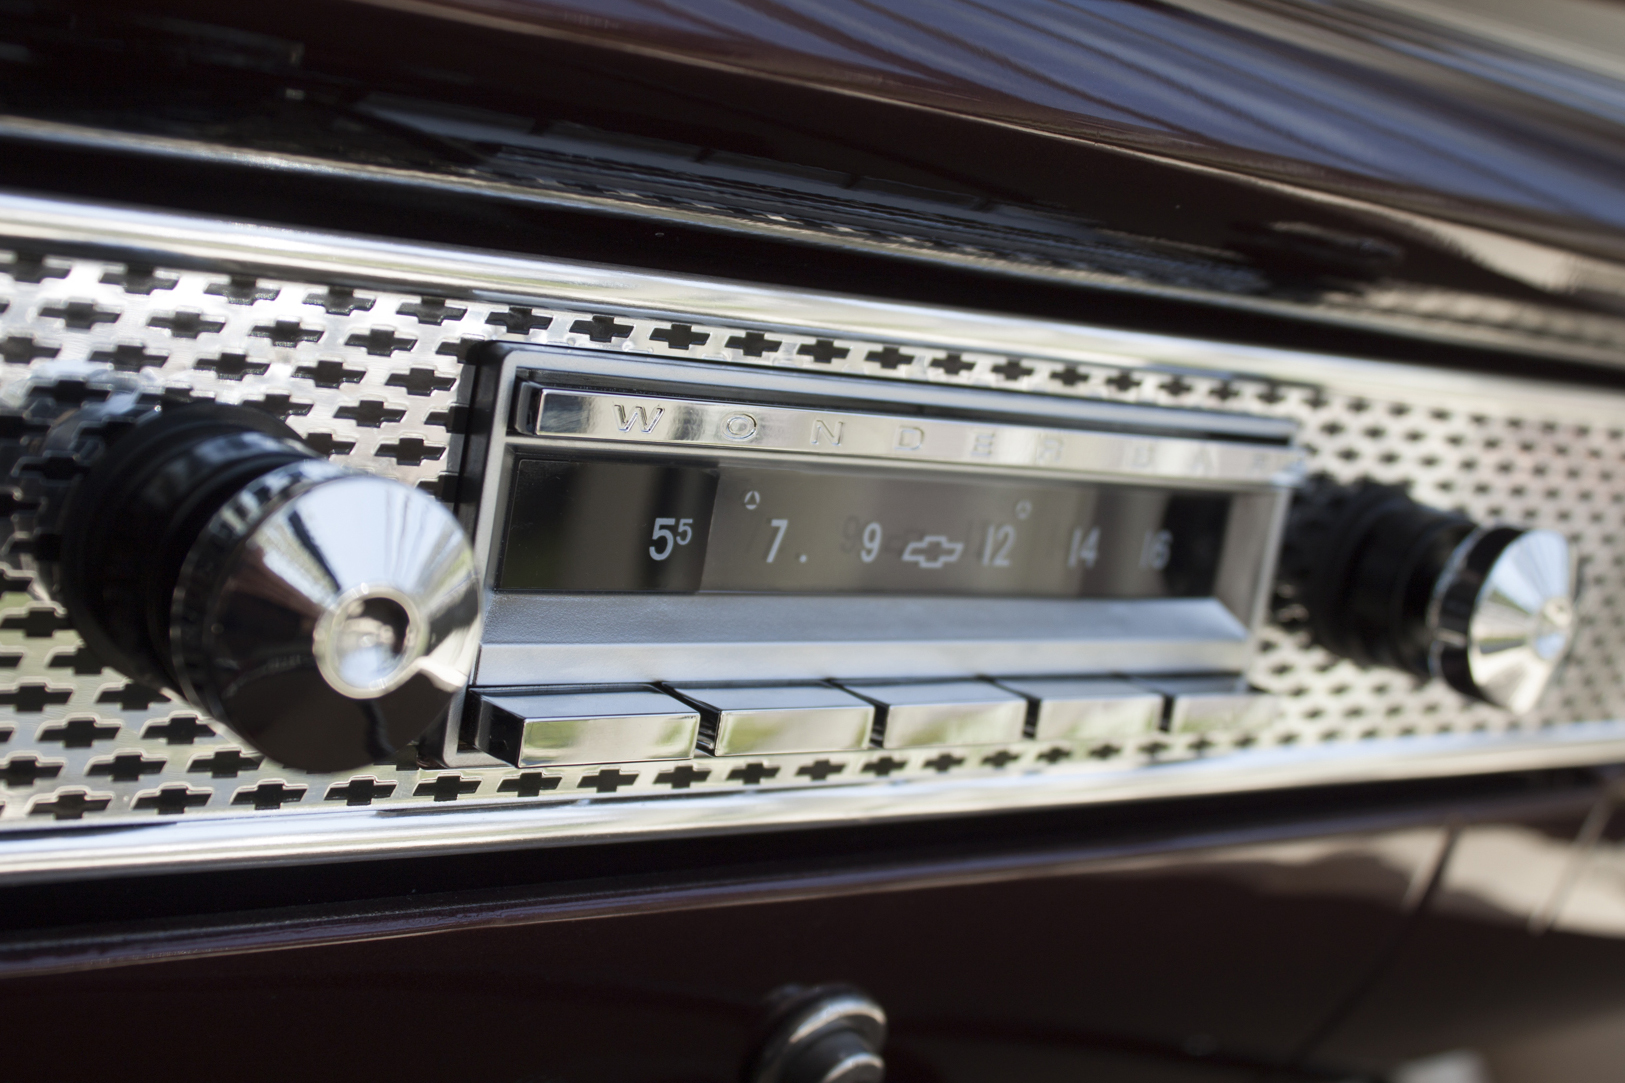 Modern radio for classic GM vehicles | ClassicCars.com Journal